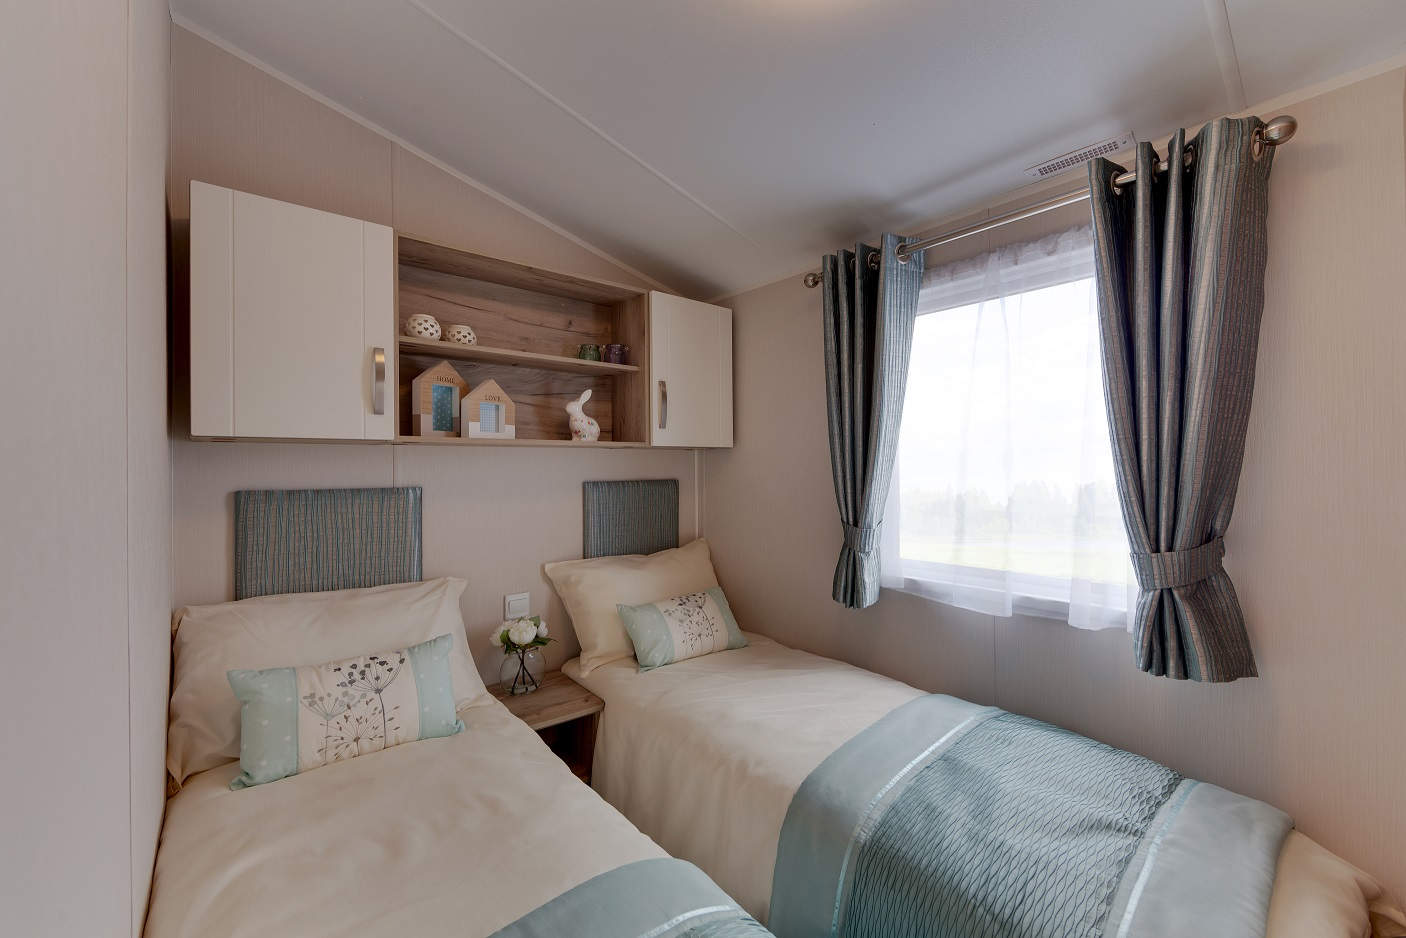 Willerby Skye: Static Caravans and Holiday Homes for Sale on Caravan Parks, Bamburgh, Northumberland Image 4